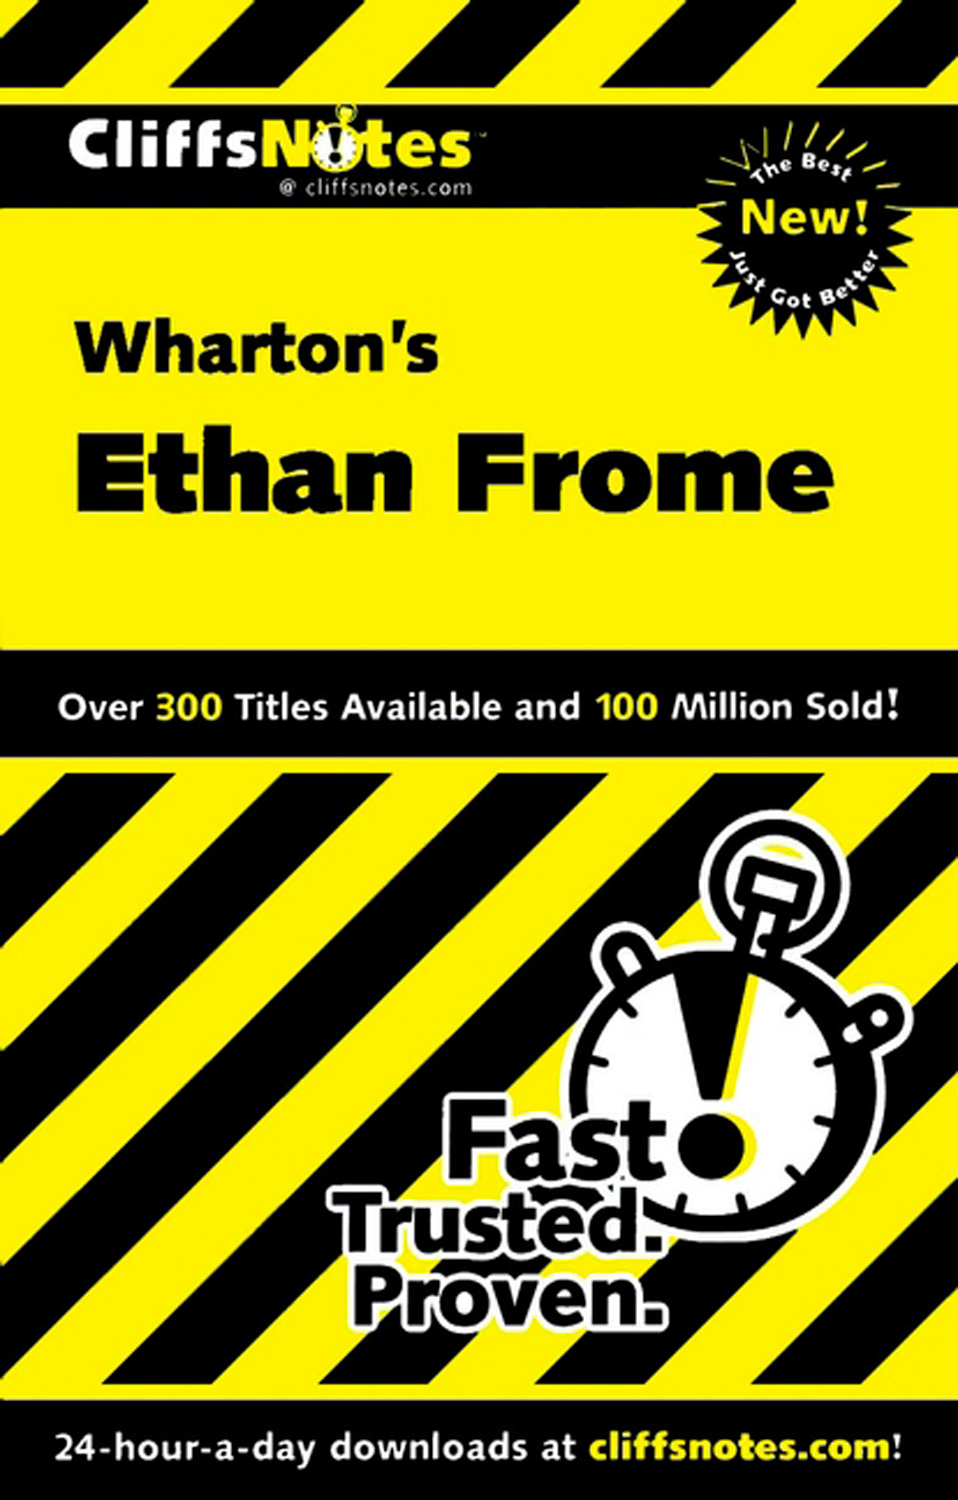 CliffsNotes on Wharton's Ethan Frome-9780764586811